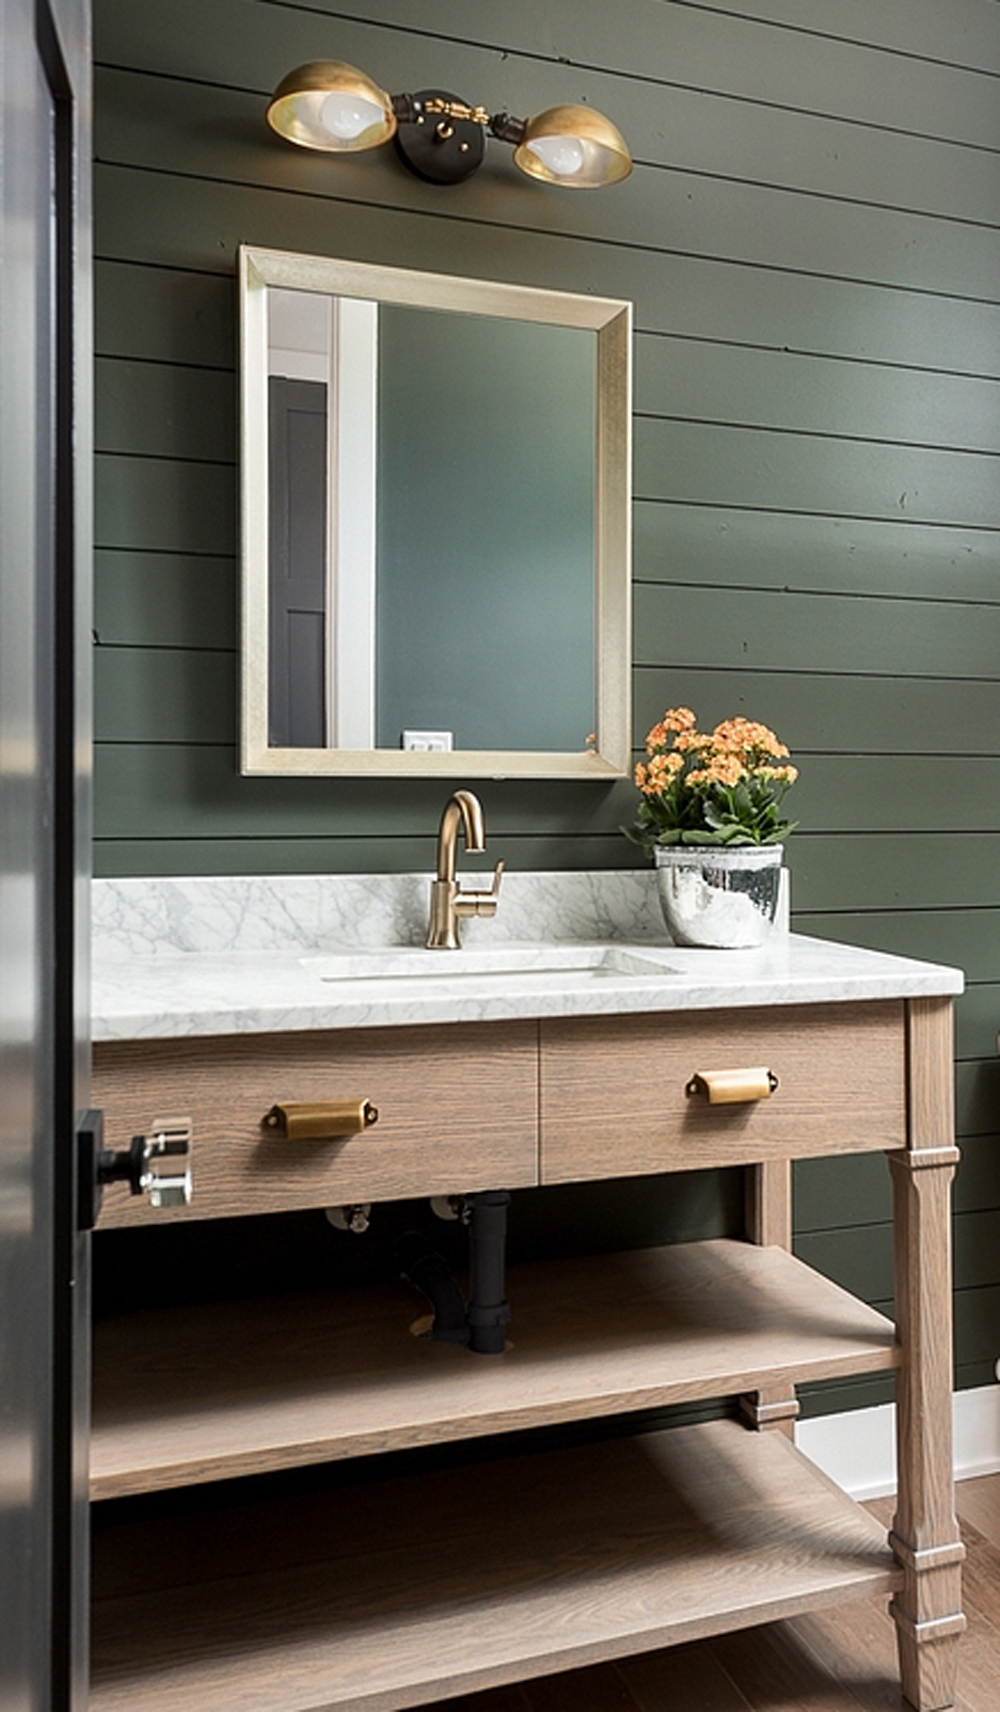 Wooden vanity in bathroom || Natural timber in interiors - FIRST SENSE